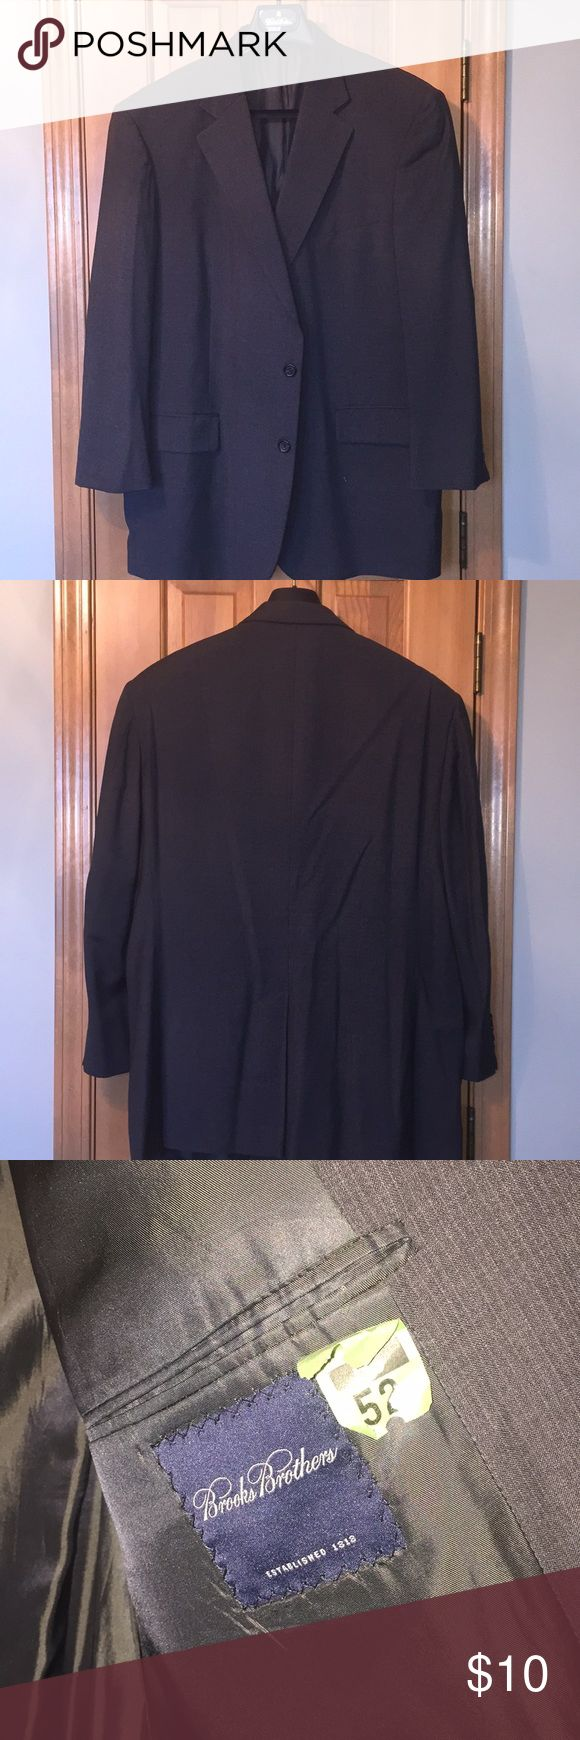 Brooks Brothers Grey Sport Coat 46 Regular Brooks brothers gray pinstripe two button  sport coat, slight signs of wear, two small pinholes beneath front left pocket, small wear marks on inside lapel right hand side, smoke free home. Brooks Brothers Suits & Blazers Sport Coats & Blazers